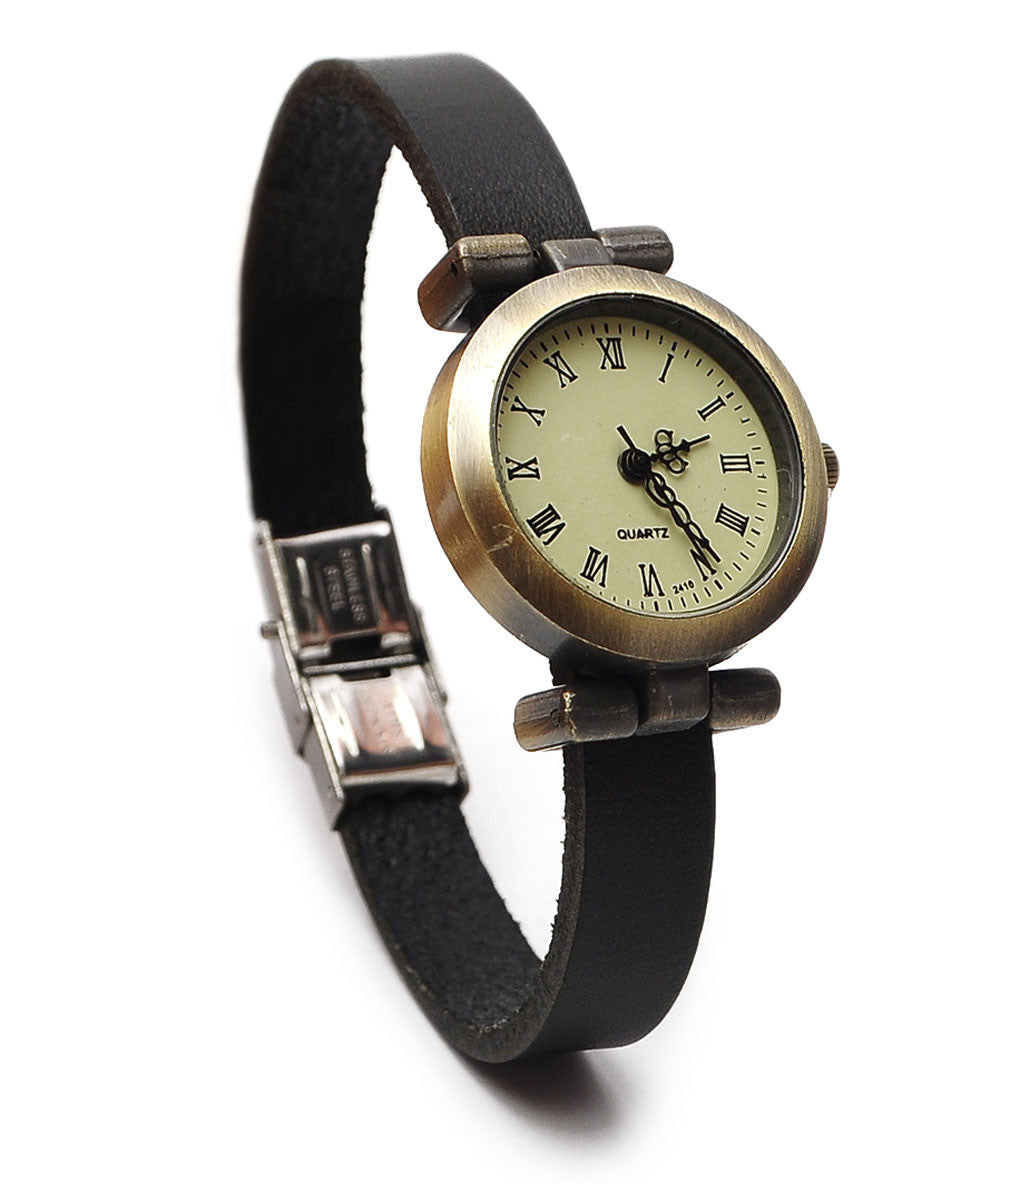 New Women Original Vintage Fashion Bracelet Real Leather Quartz Wrist Watch